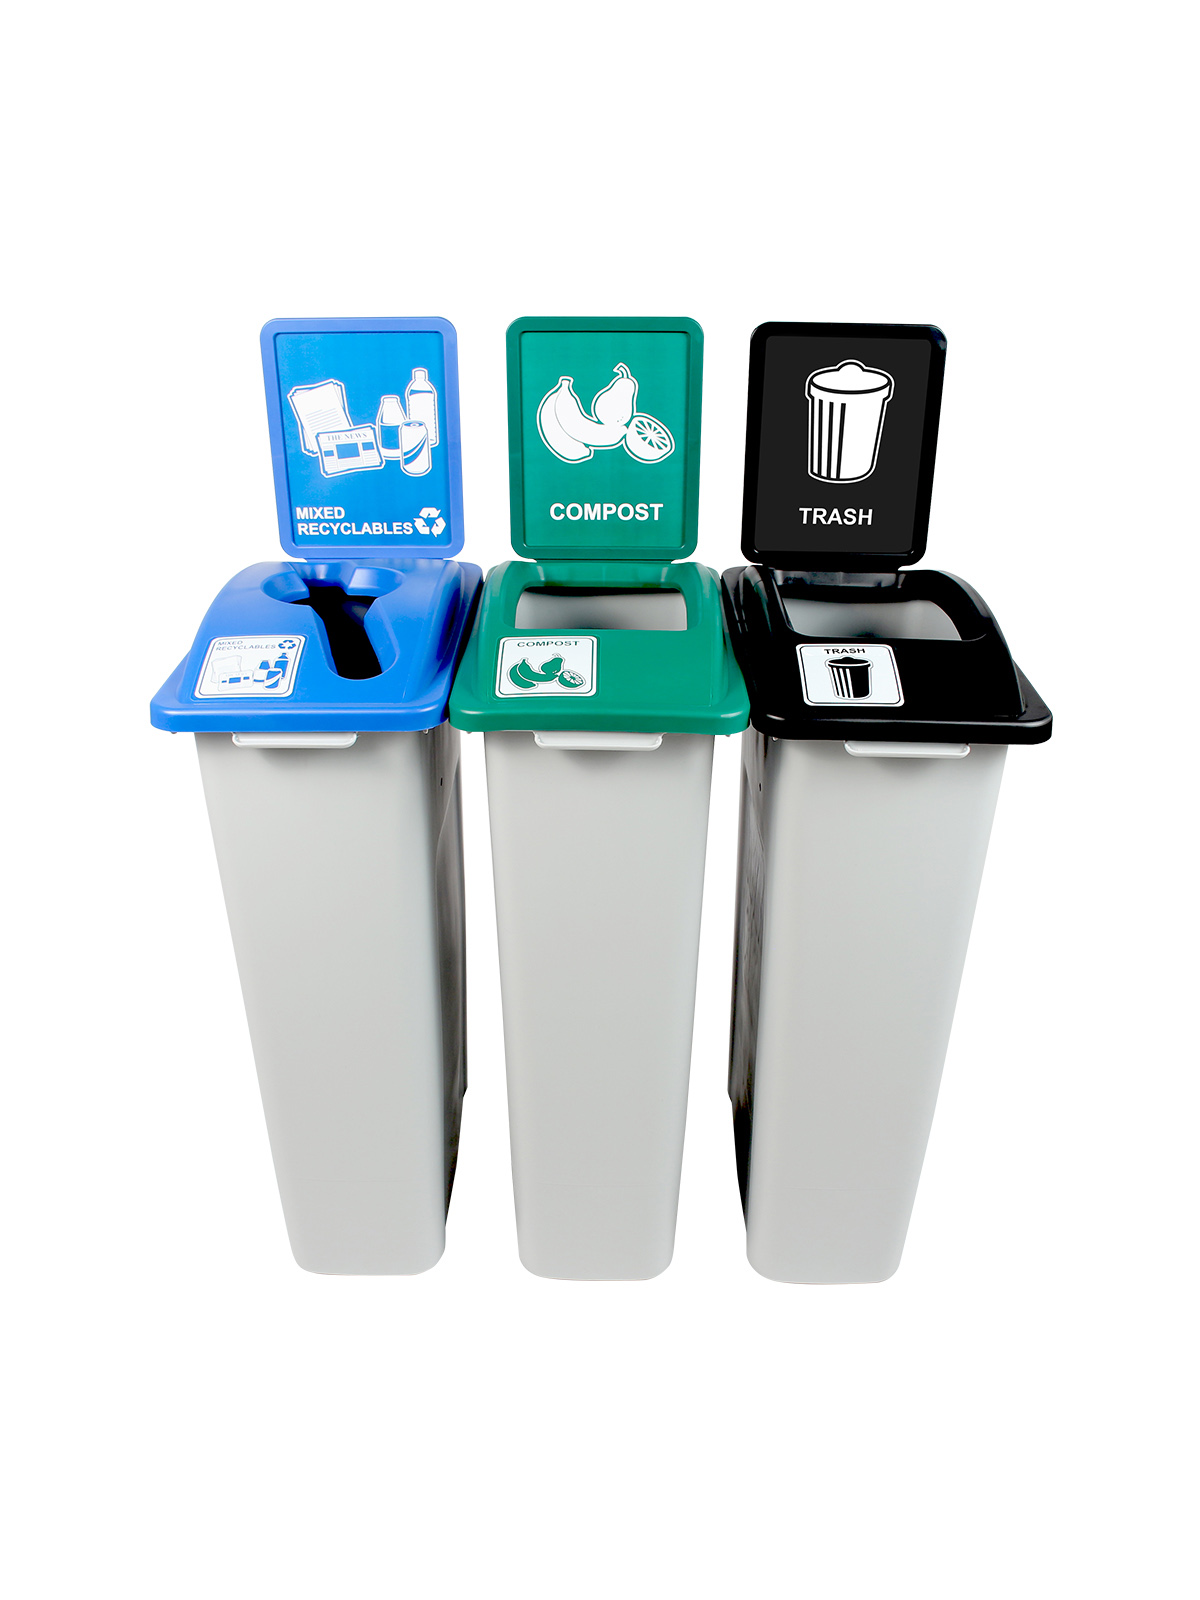 WASTE WATCHER - Triple - Wisconsin Compliant - Mixed Recyclables-Compost-Trash - Mixed-Full - Grey-Blue-Green-Black title=